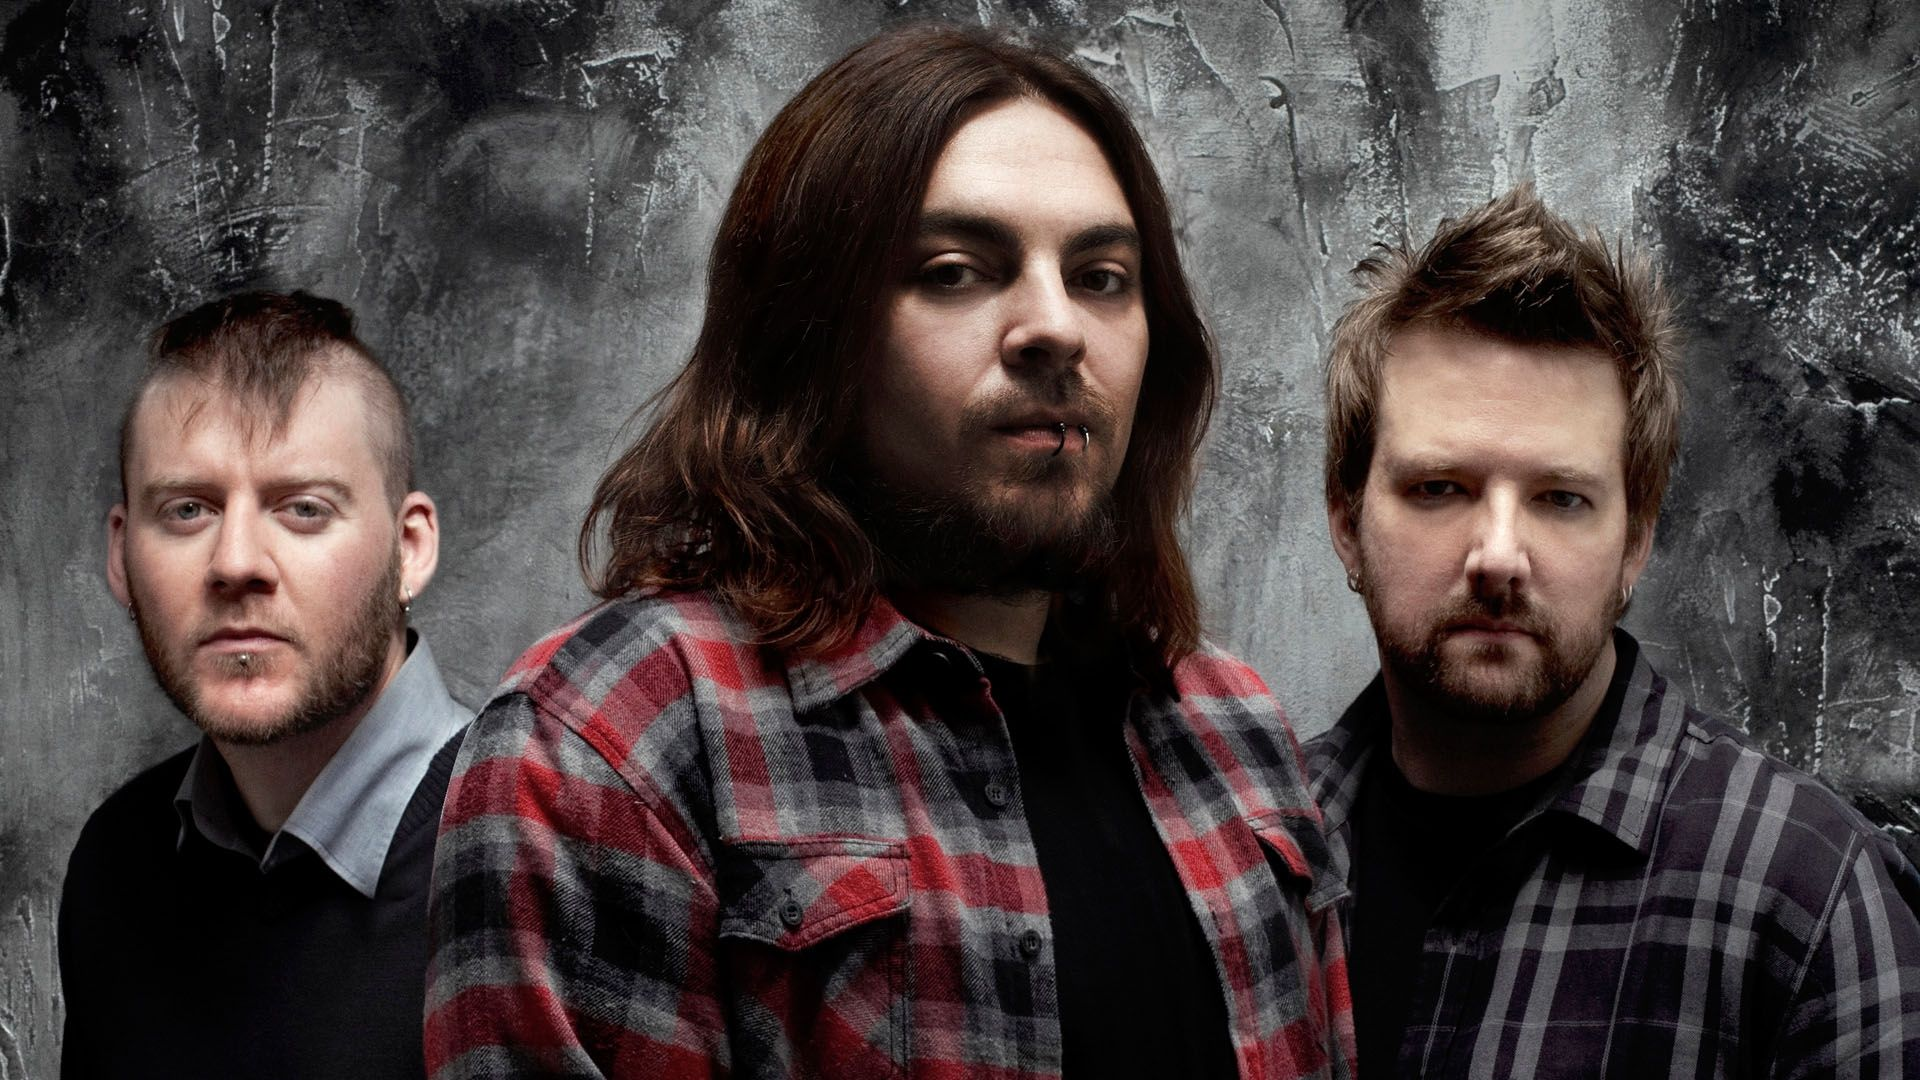 seether, shirts, piercing - http://www.wallpapers4u.org/seether-shirts-piercing/